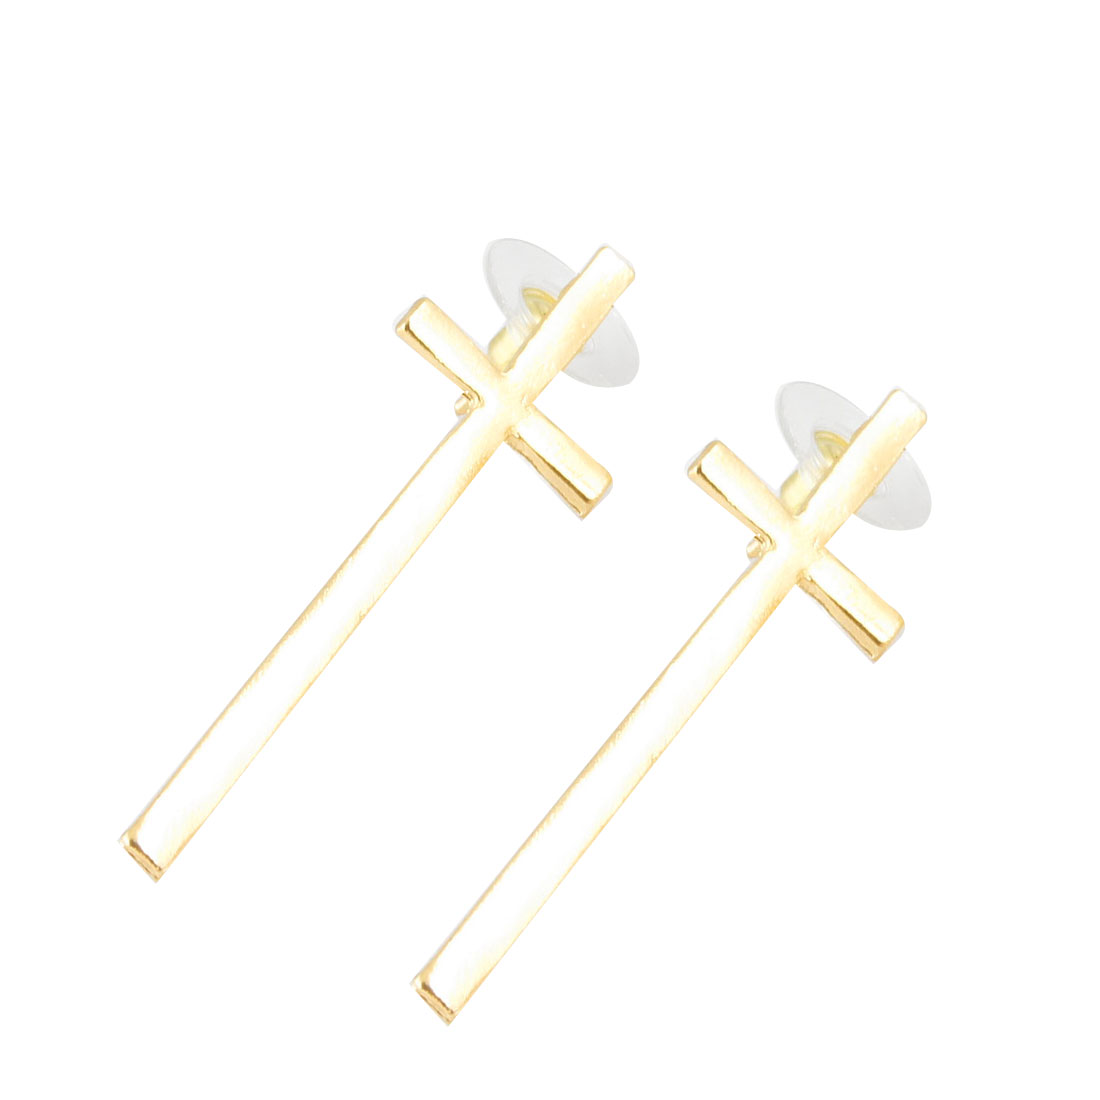 Pair Ears Decoration Metal Cross Shape Mini Stud Earrings Gold Tone for Lady